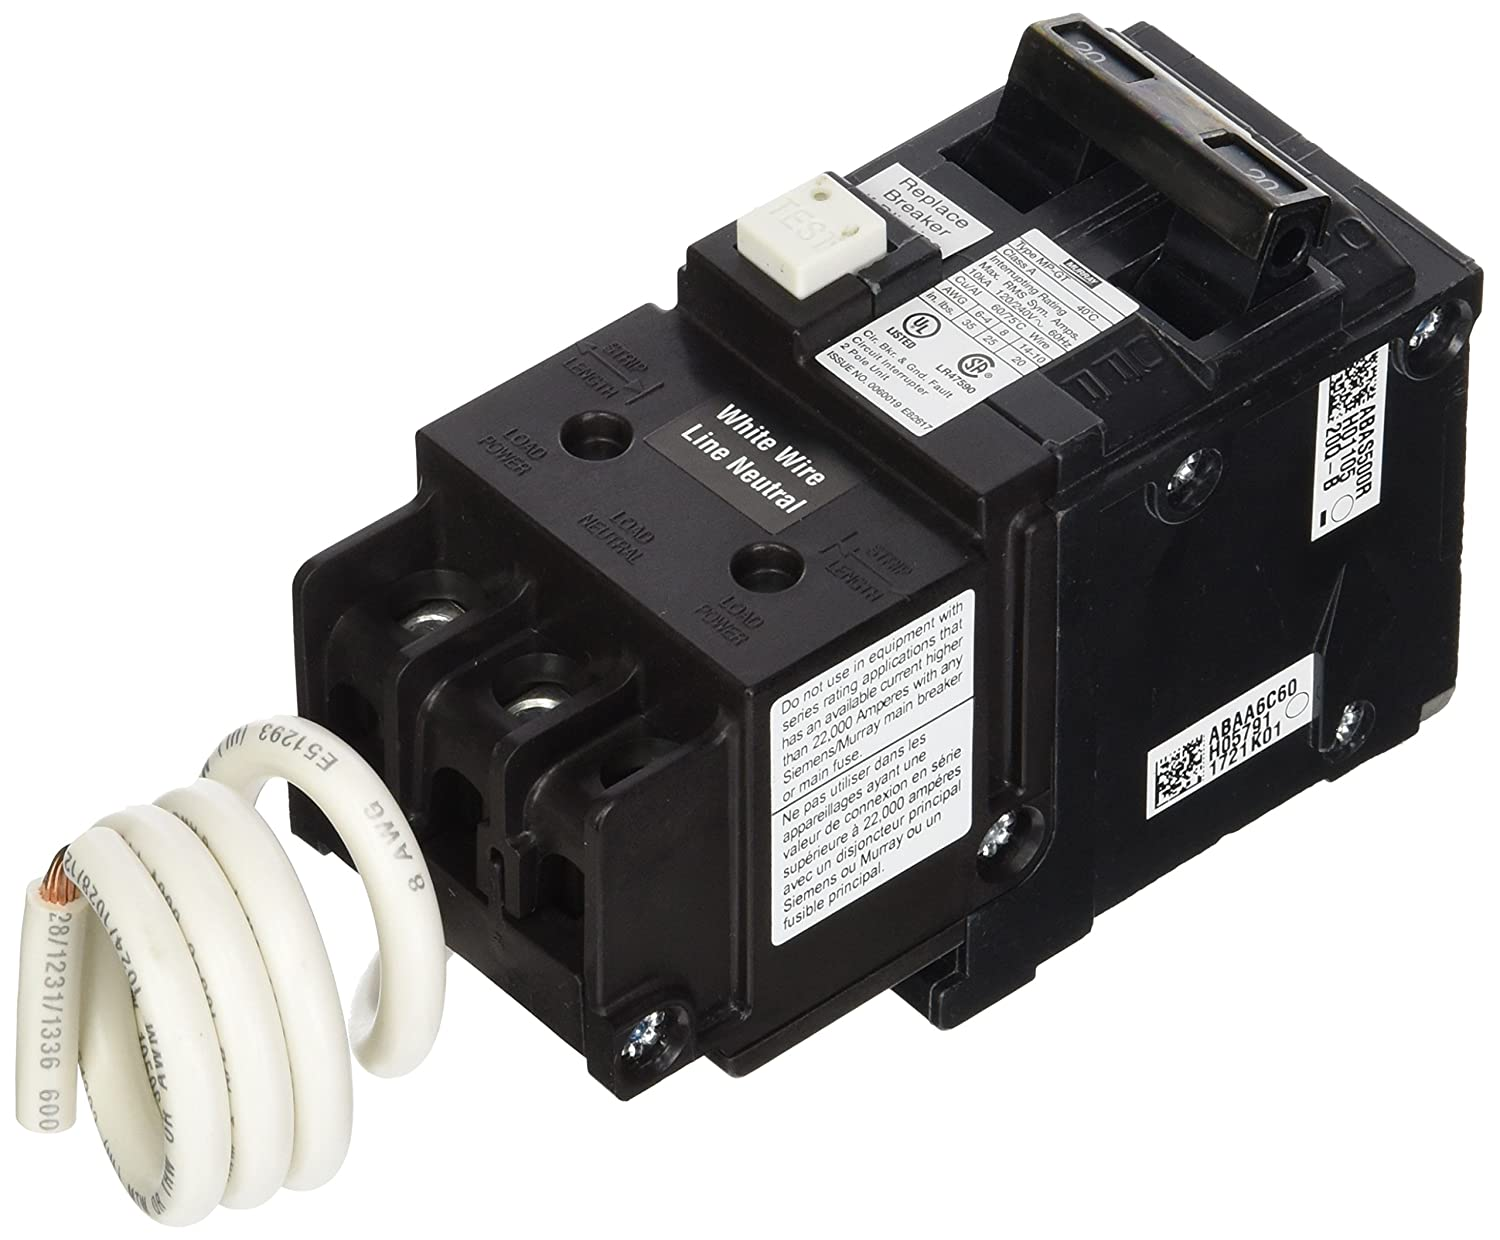 Murray Mp220gfa 20 Amp 2 Pole Gfci Circuit Breaker With Self Test In Doublepole Lockout